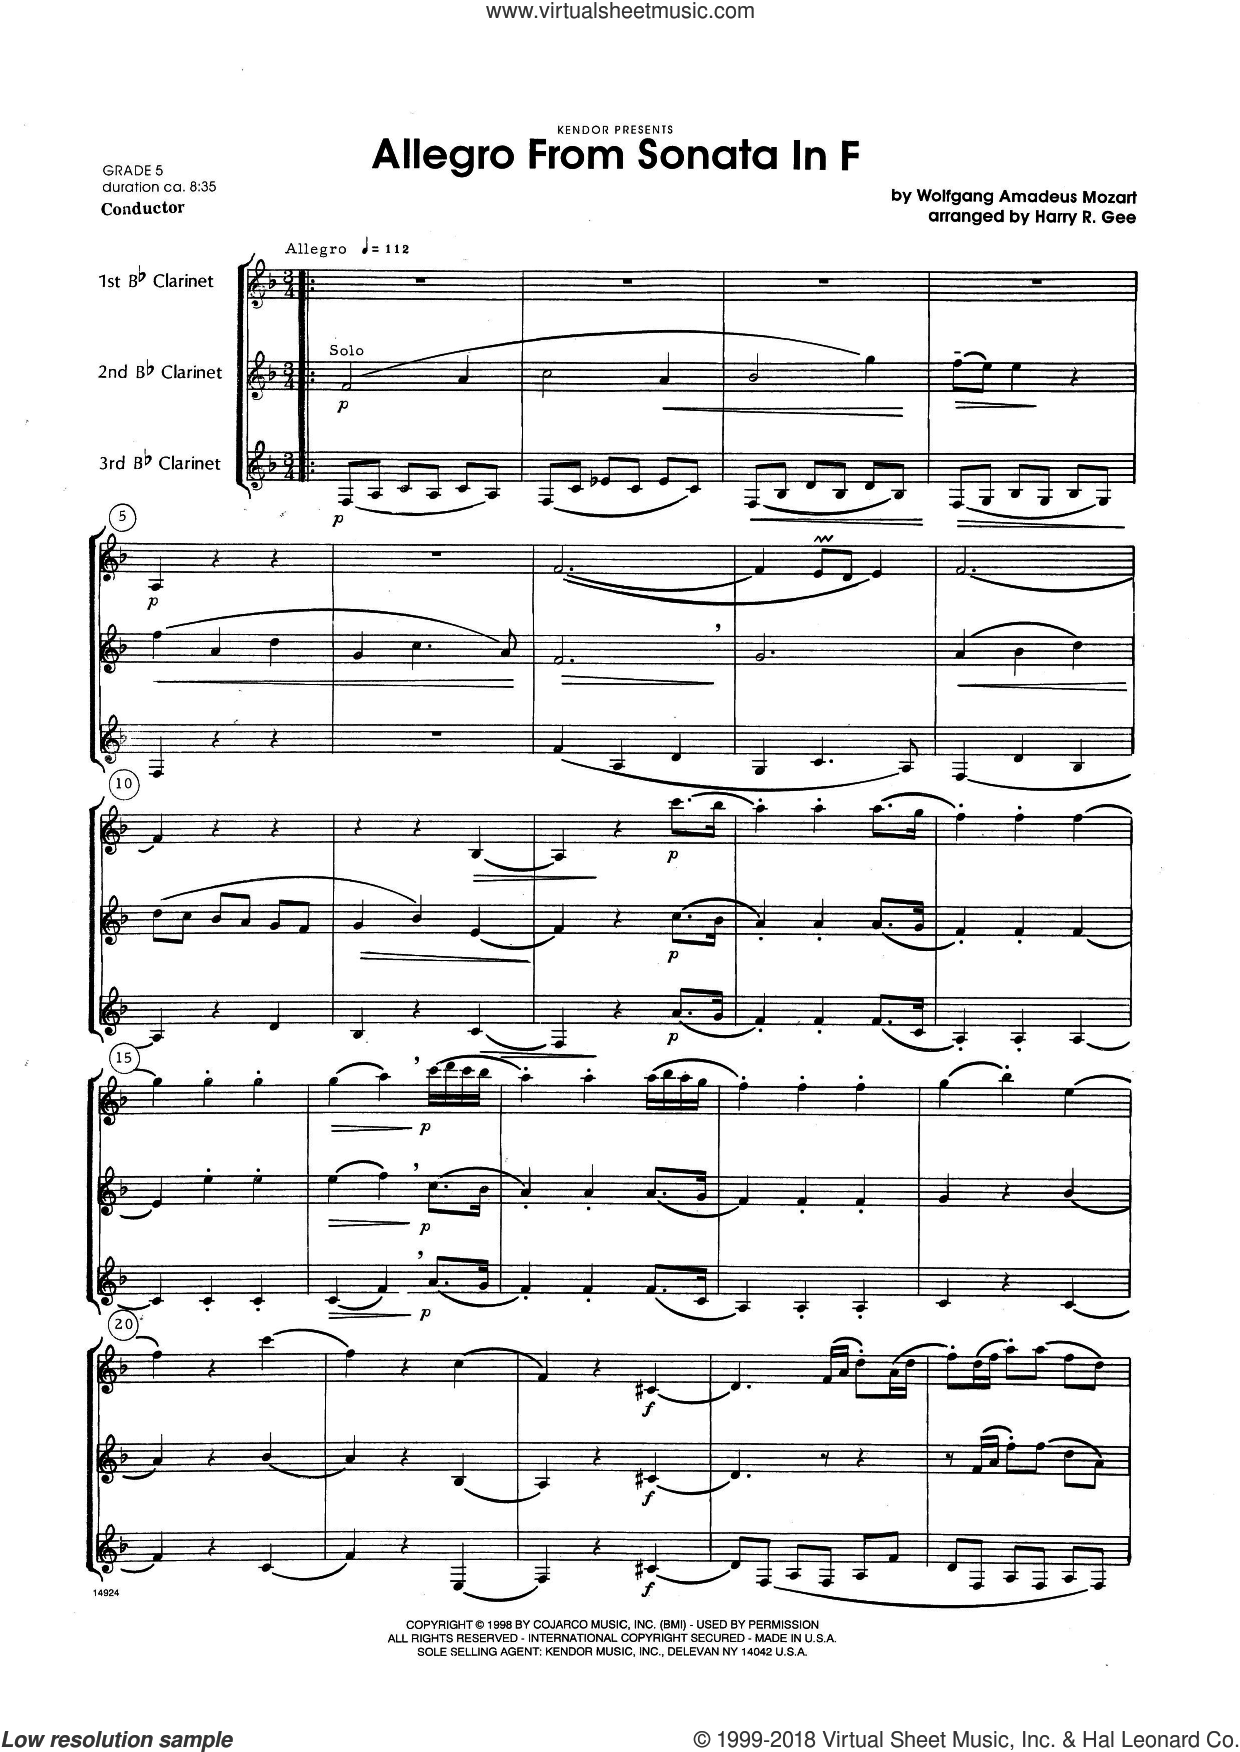 Allegro From Sonata In F (COMPLETE) sheet music for clarinet trio by Harry Gee and Wolfgang Amadeus Mozart, classical score, intermediate. Score Image Preview.